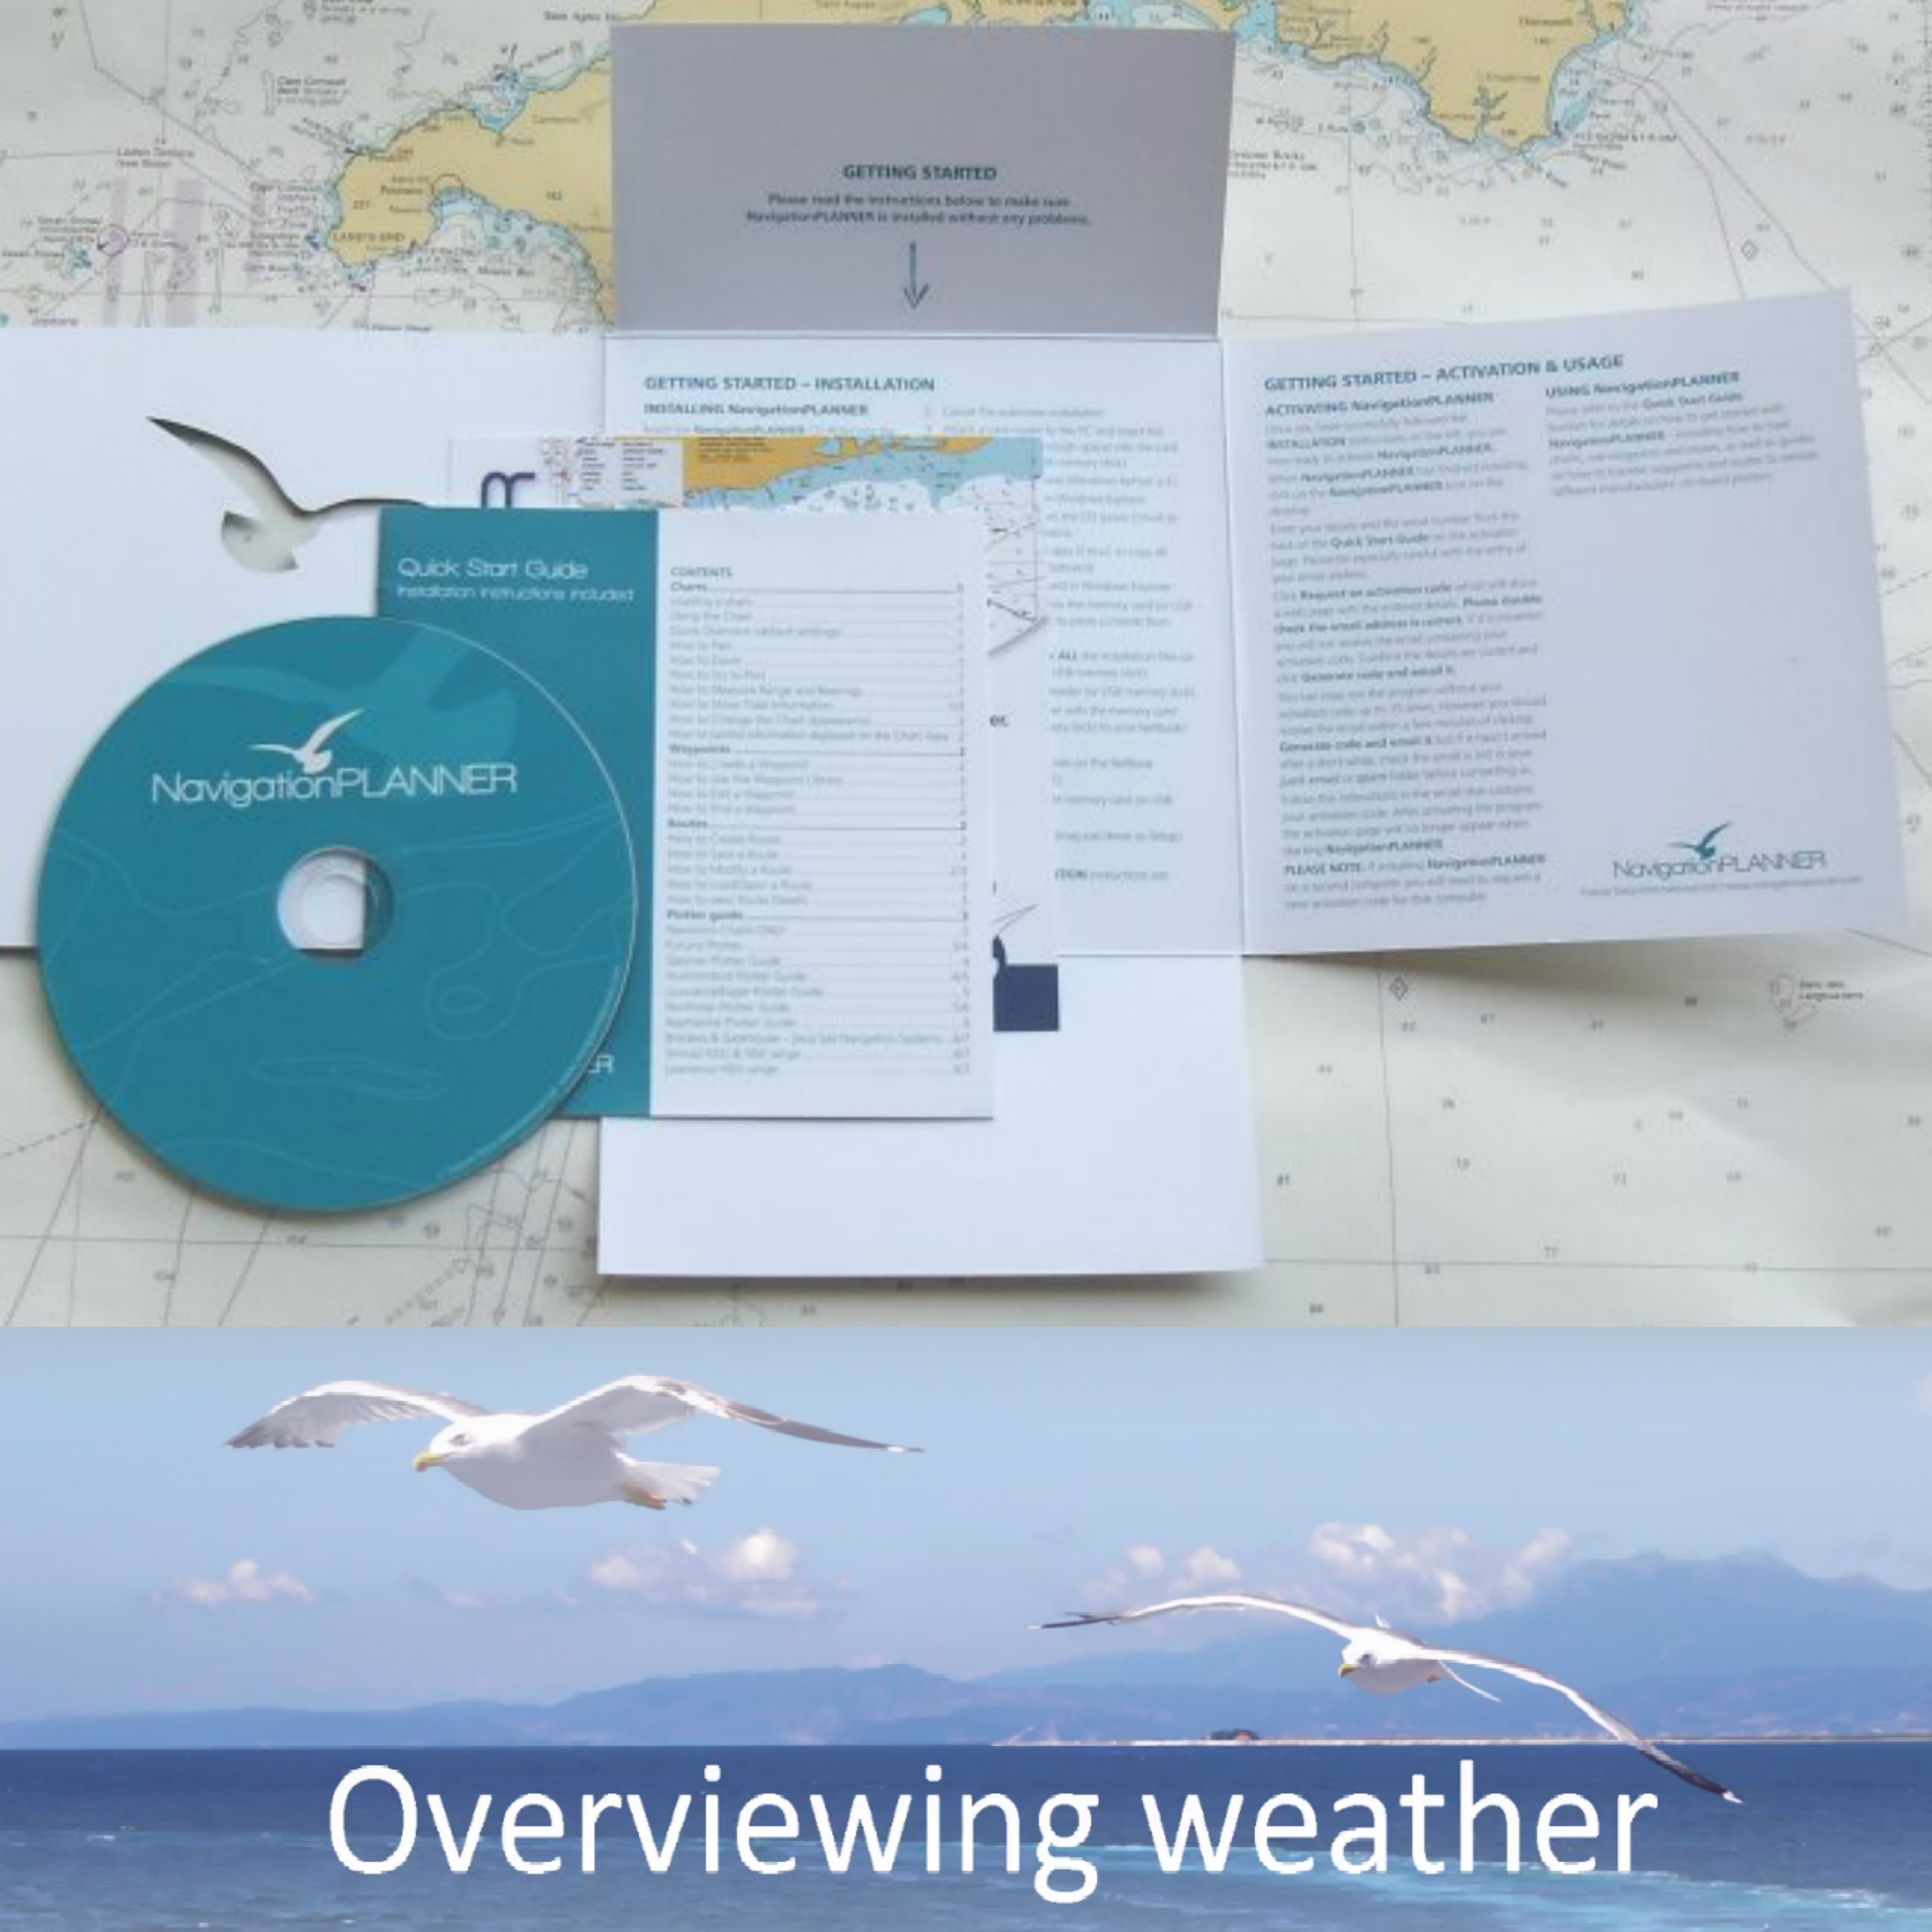 Navionics NAVPLANNER 7|PC Navigation Charts&Program|Routes/Weather-Forecast|Licence 3 PC